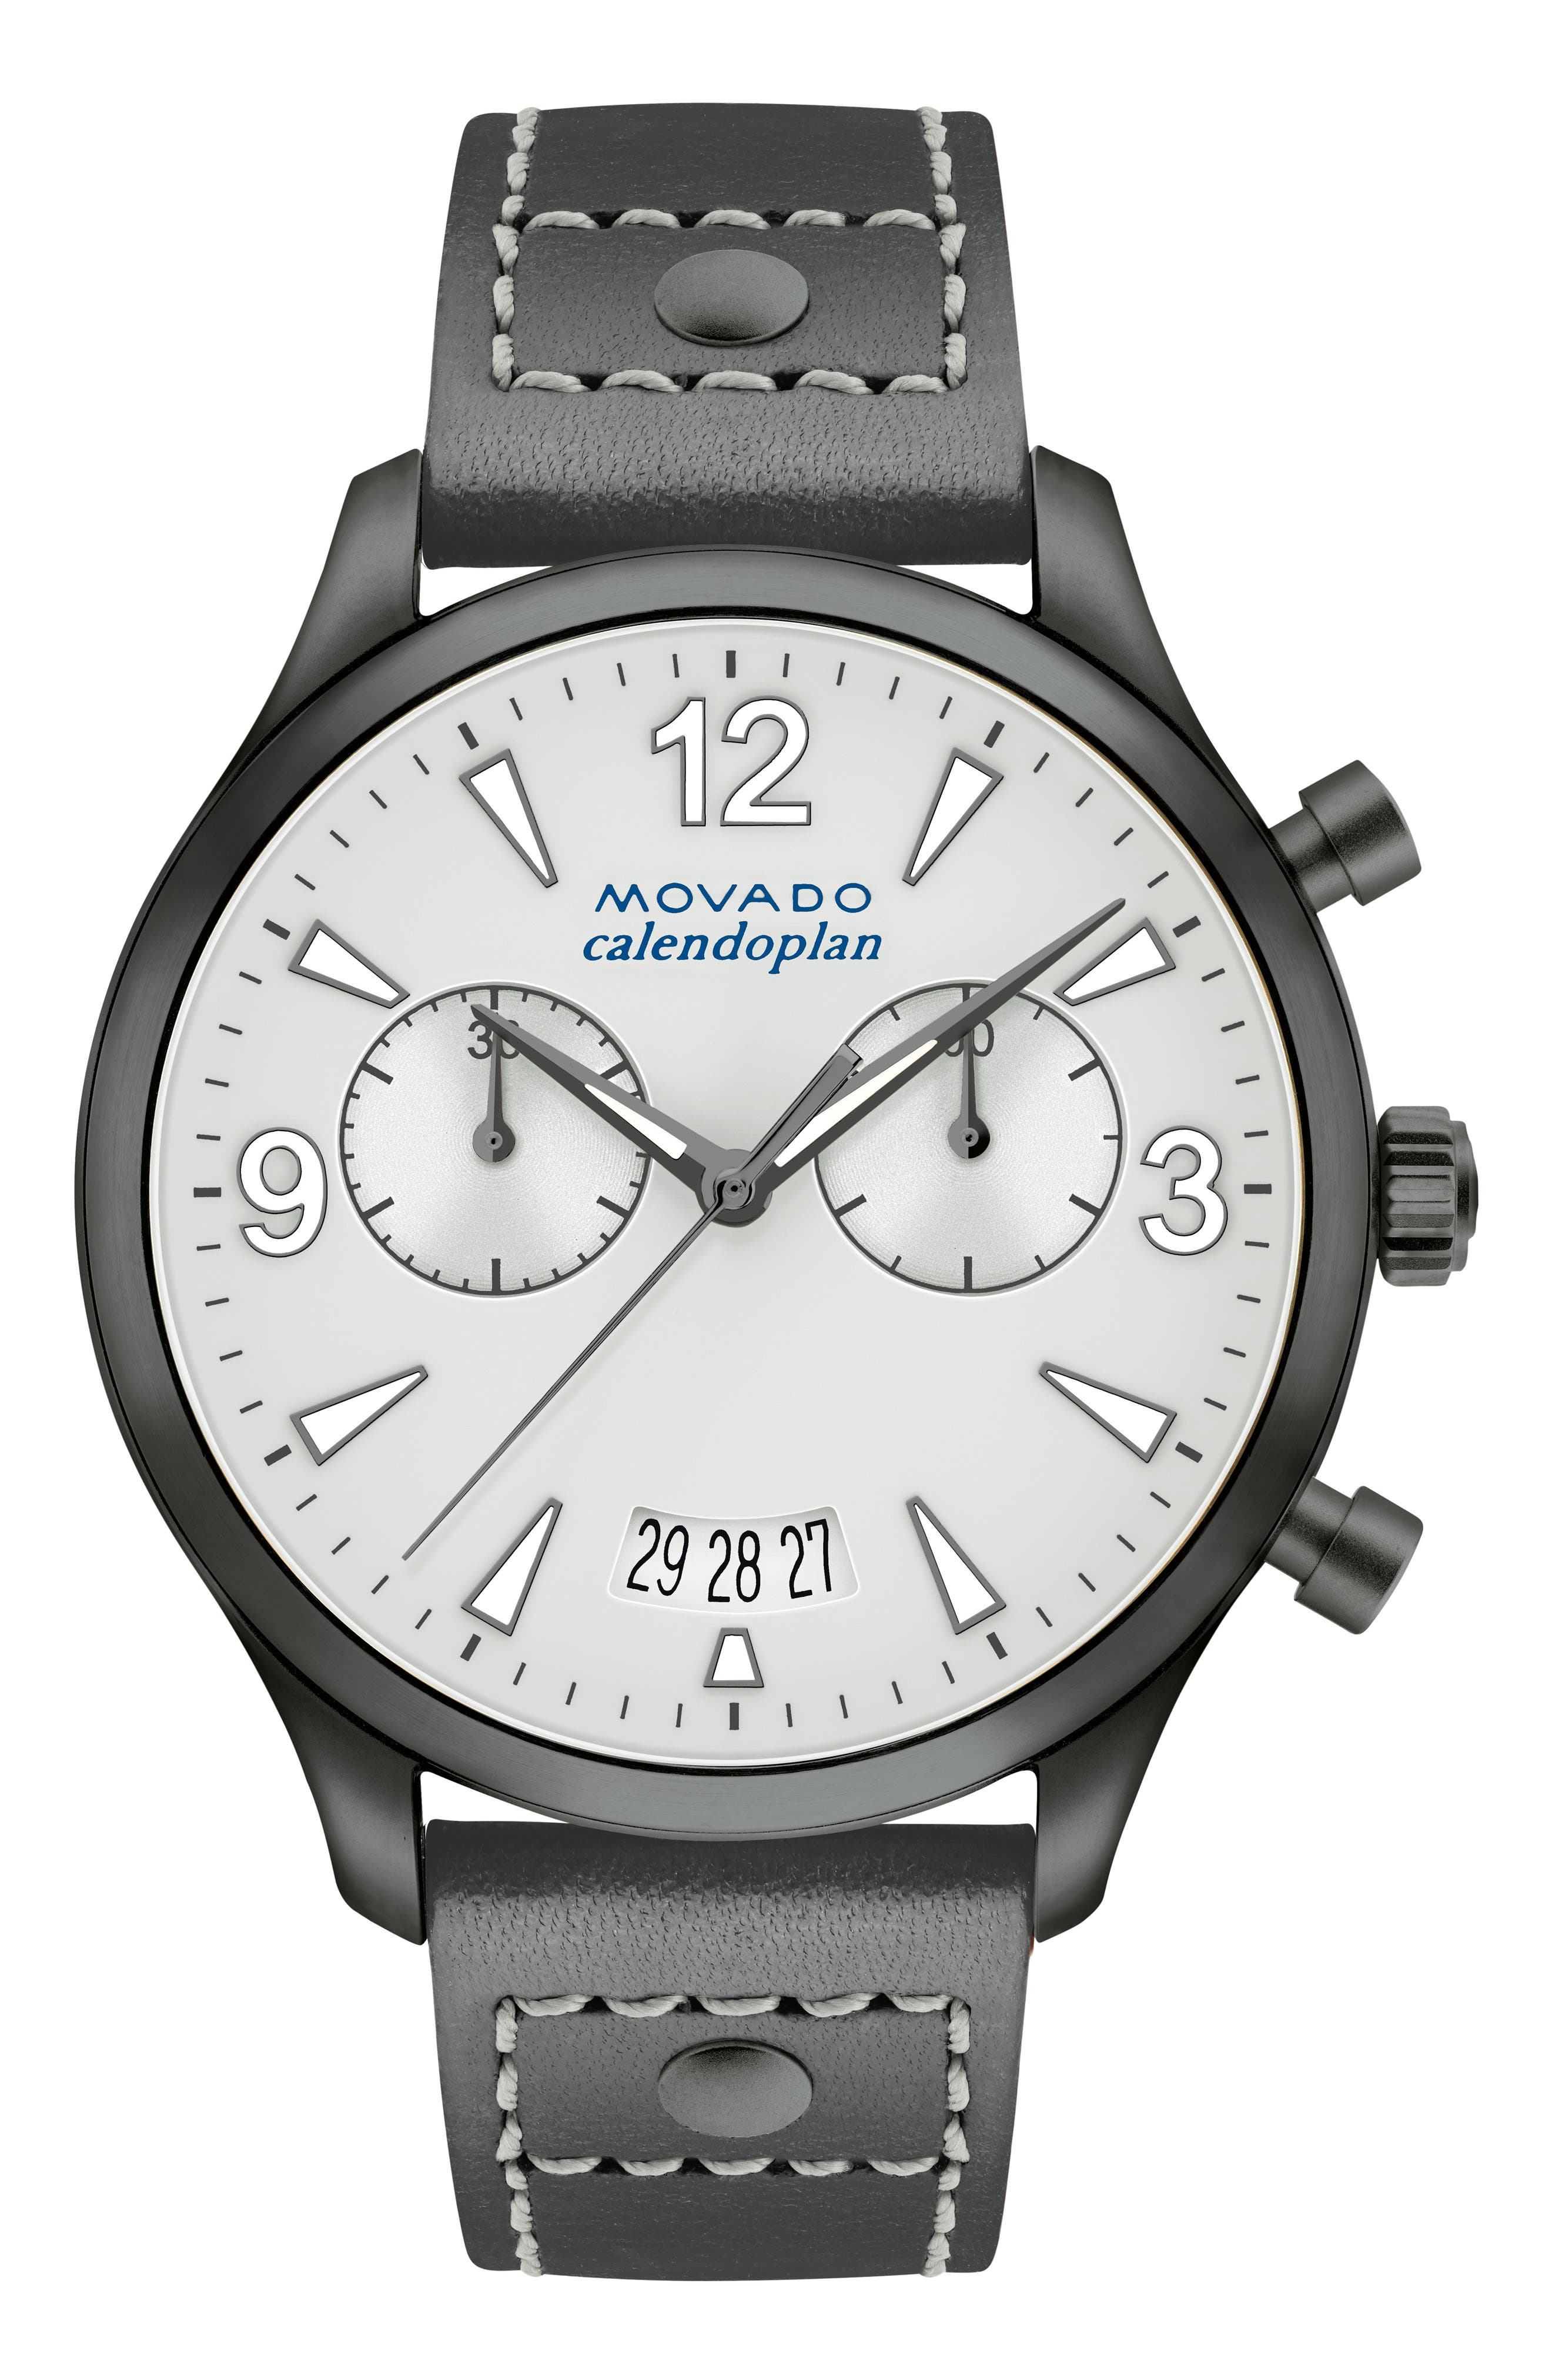 Alternate Image 1 Selected - Movado Heritage Calendoplan Chronograph Leather Strap Watch, 38mm